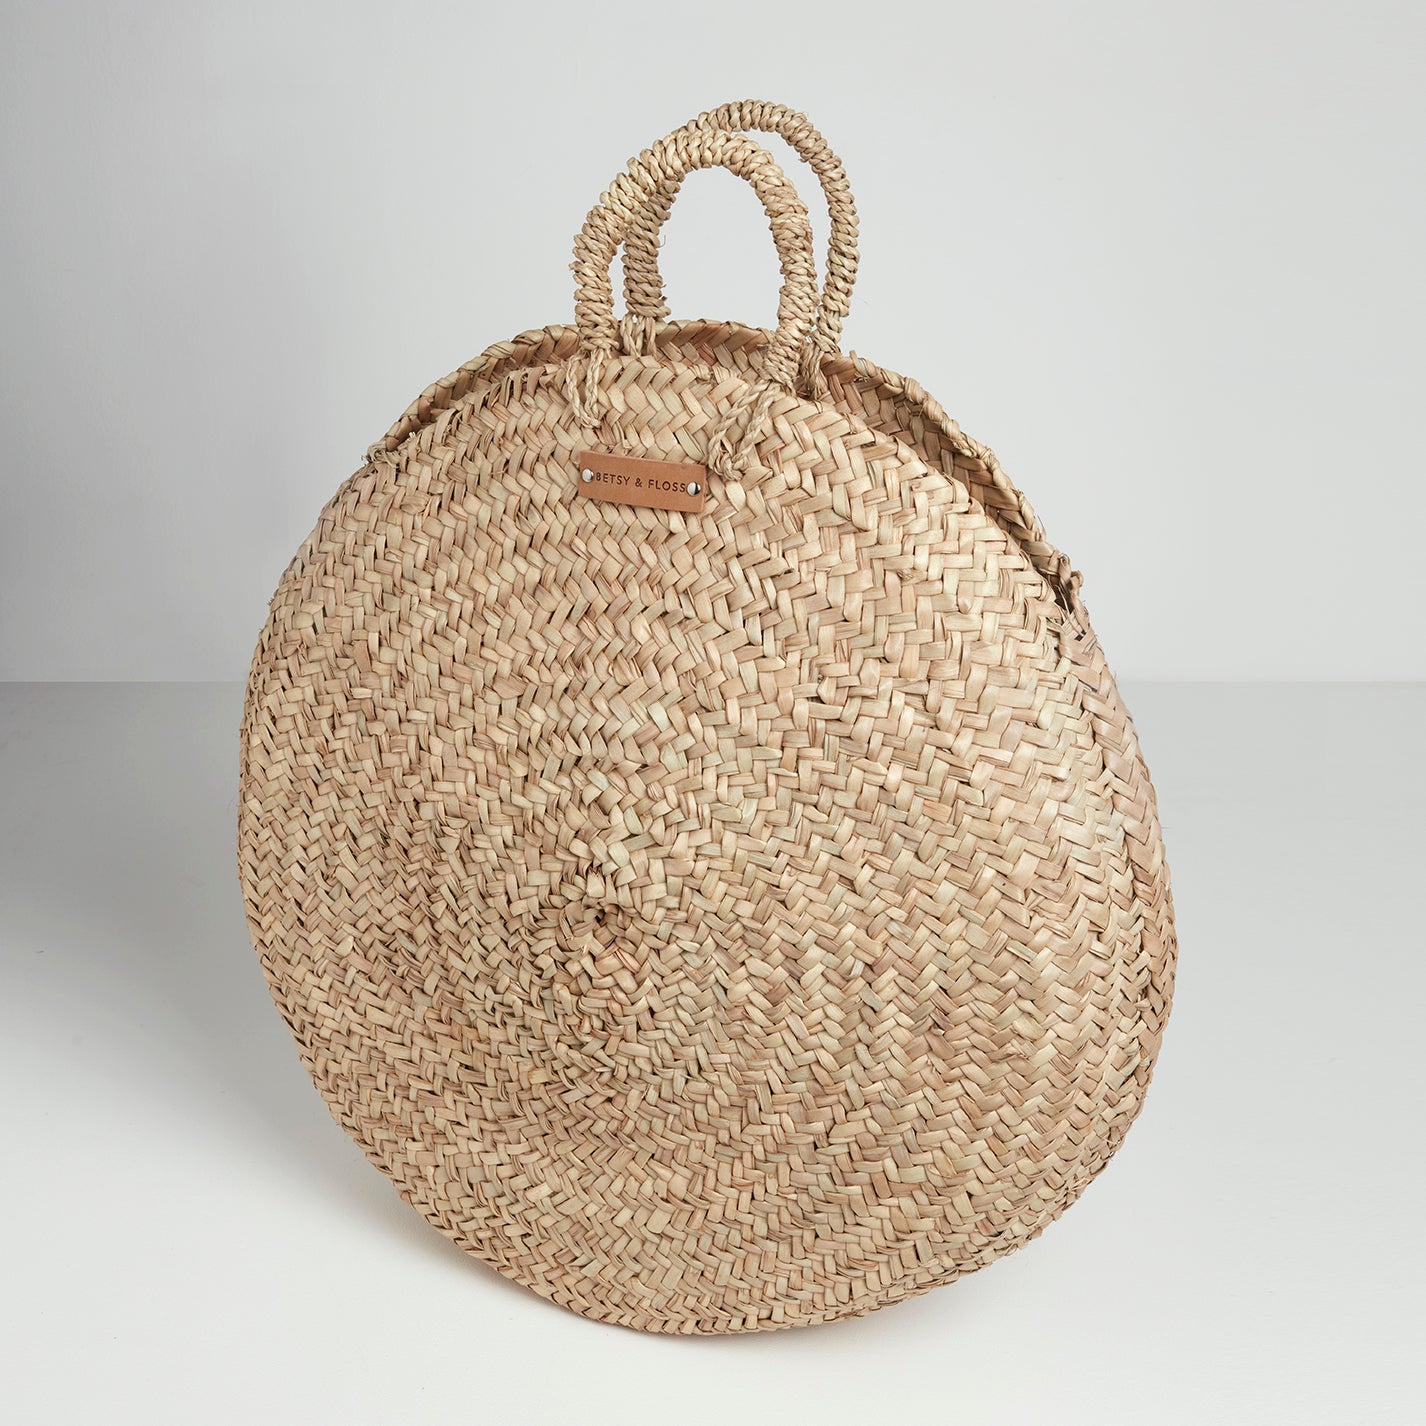 Tivoli Large Round Basket Bag | Betsy & Floss